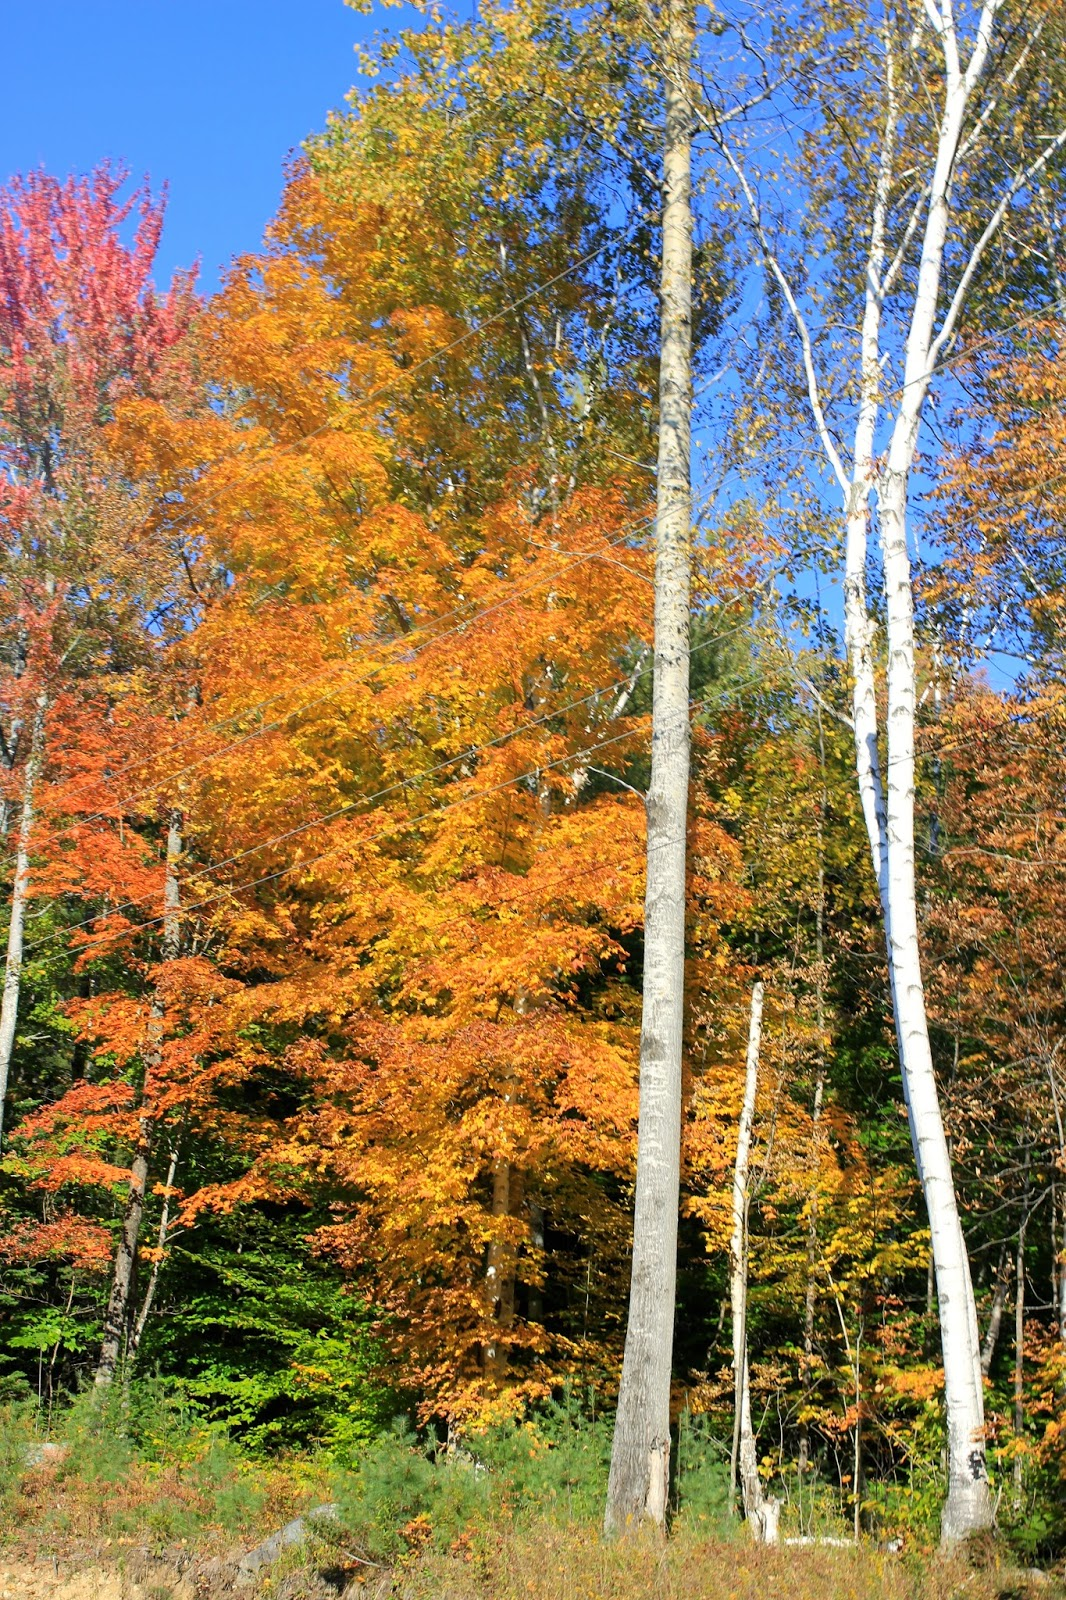 Fall Foliage in the Adirondack Mountains in Upstate, NY. Via www.goldenboysandme,com